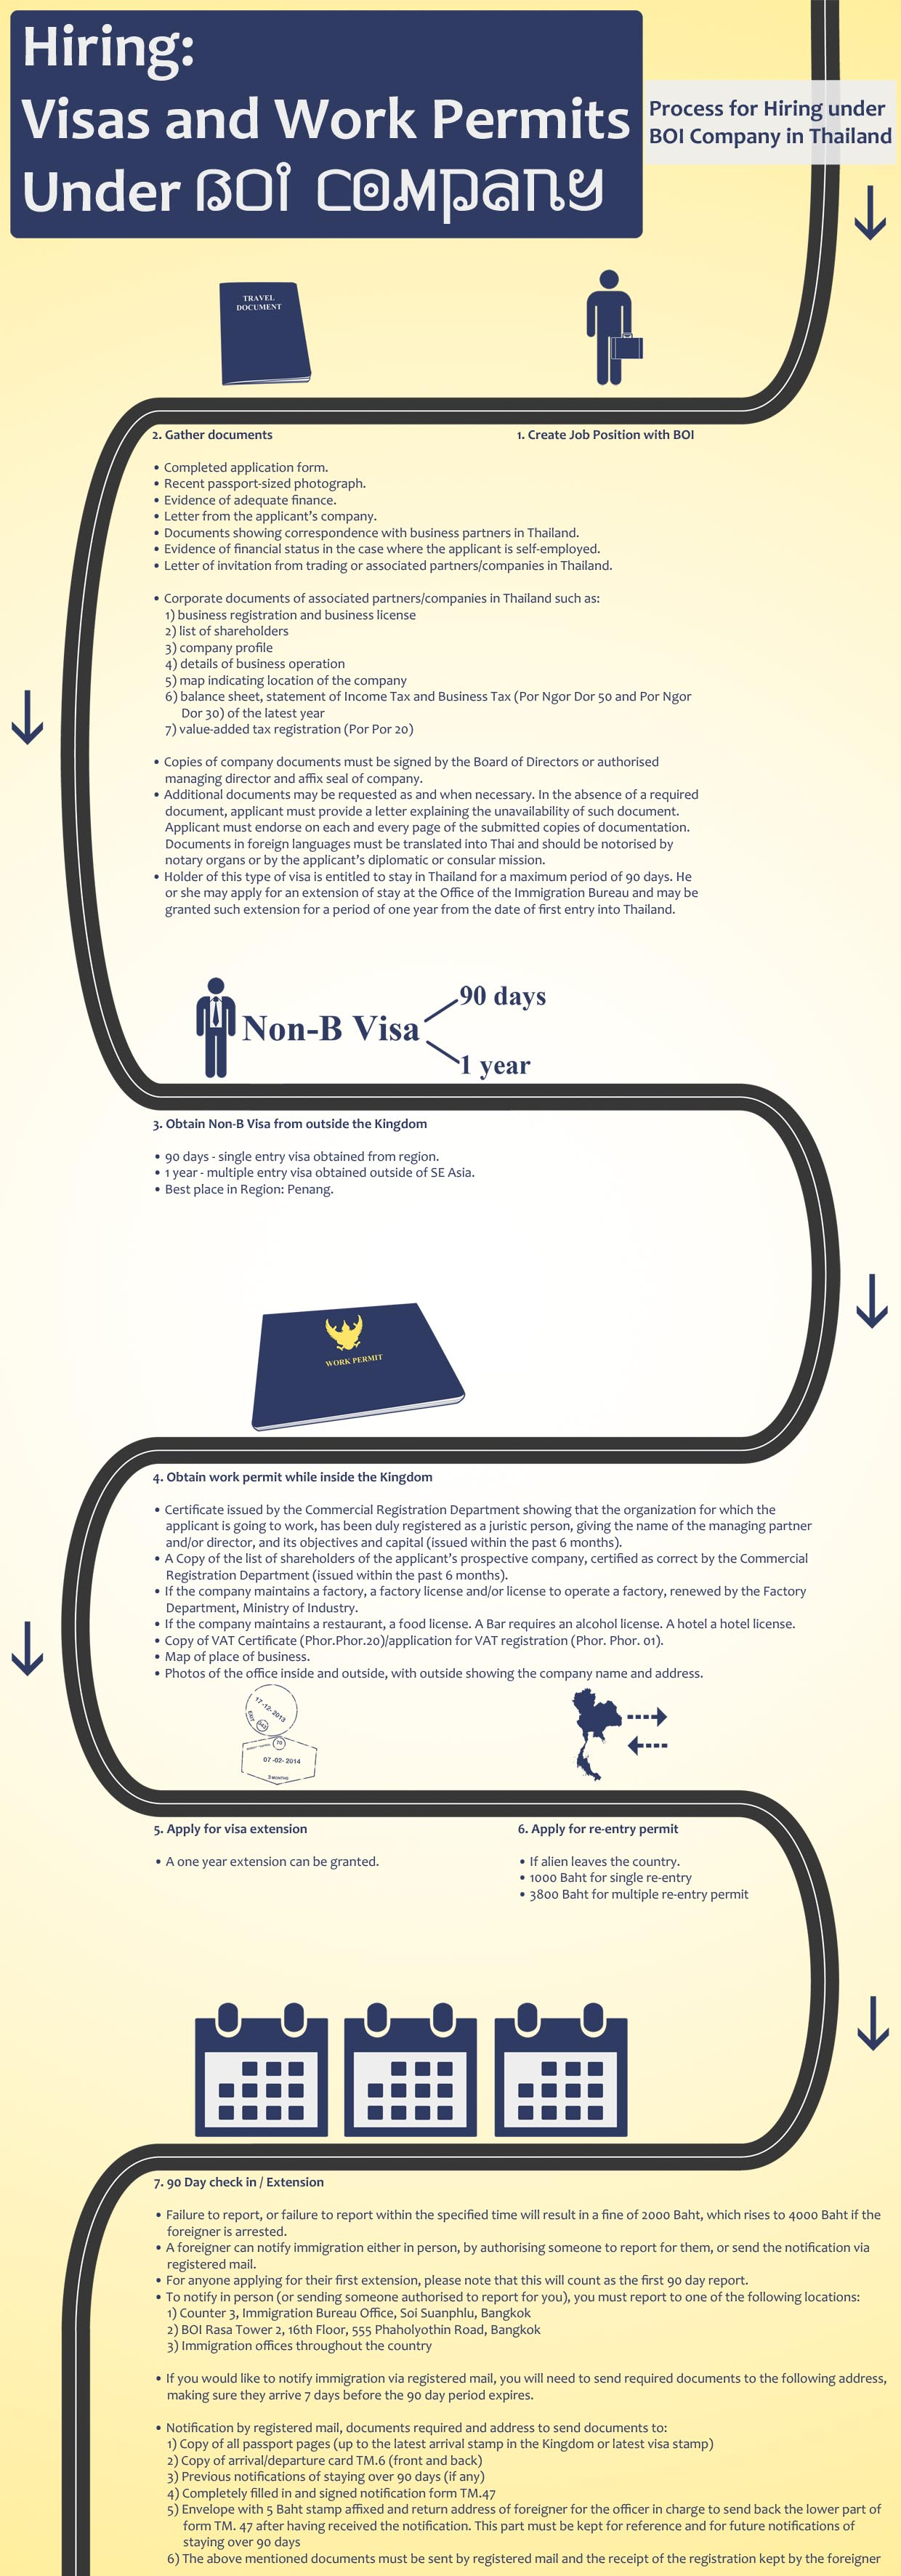 Hiring: Visas and Work Permits Under BOI Company in Thailand Infographic